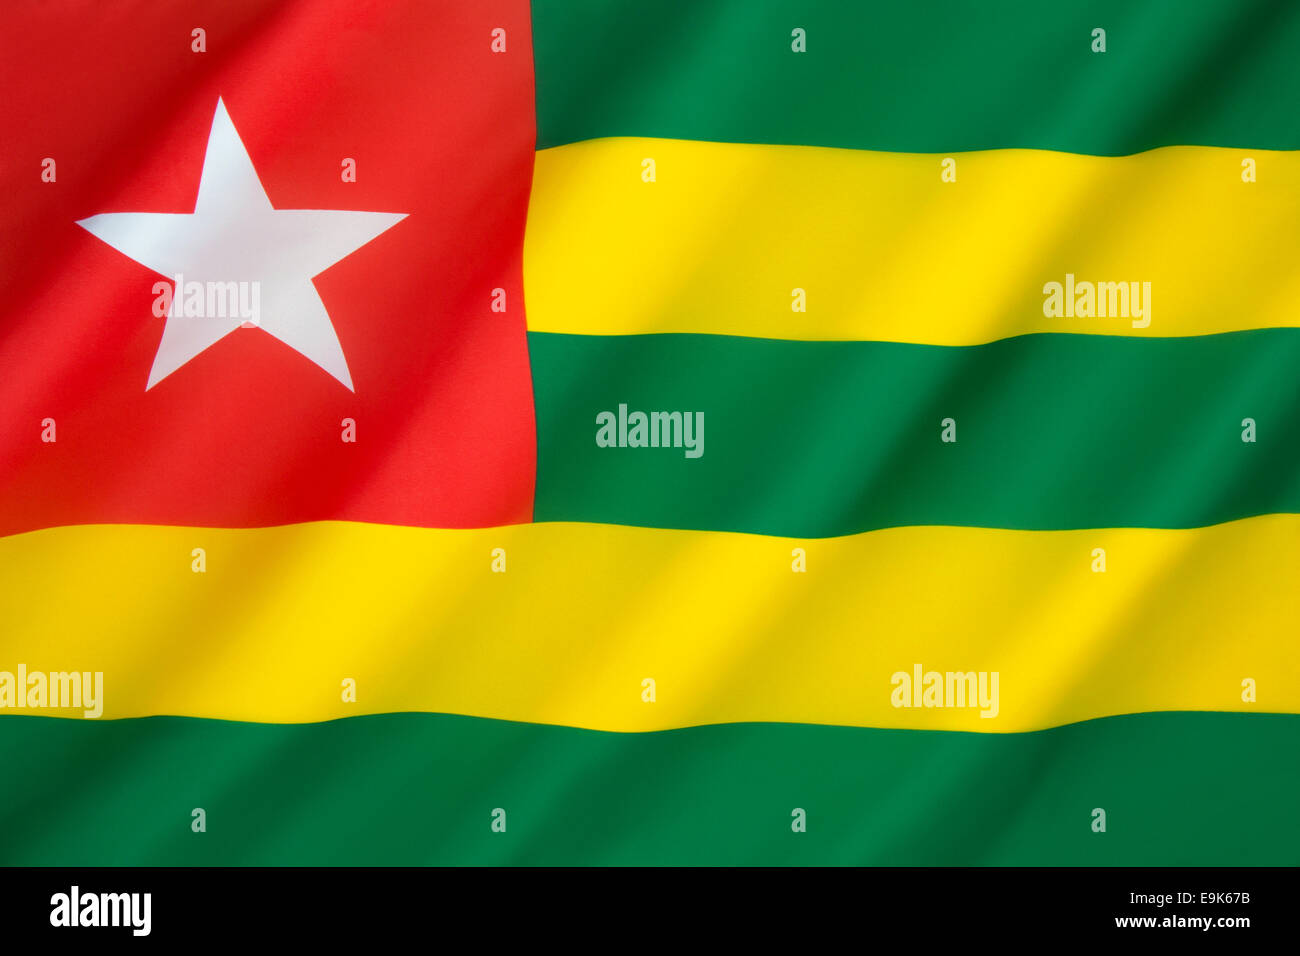 Flag of Togo - Stock Image